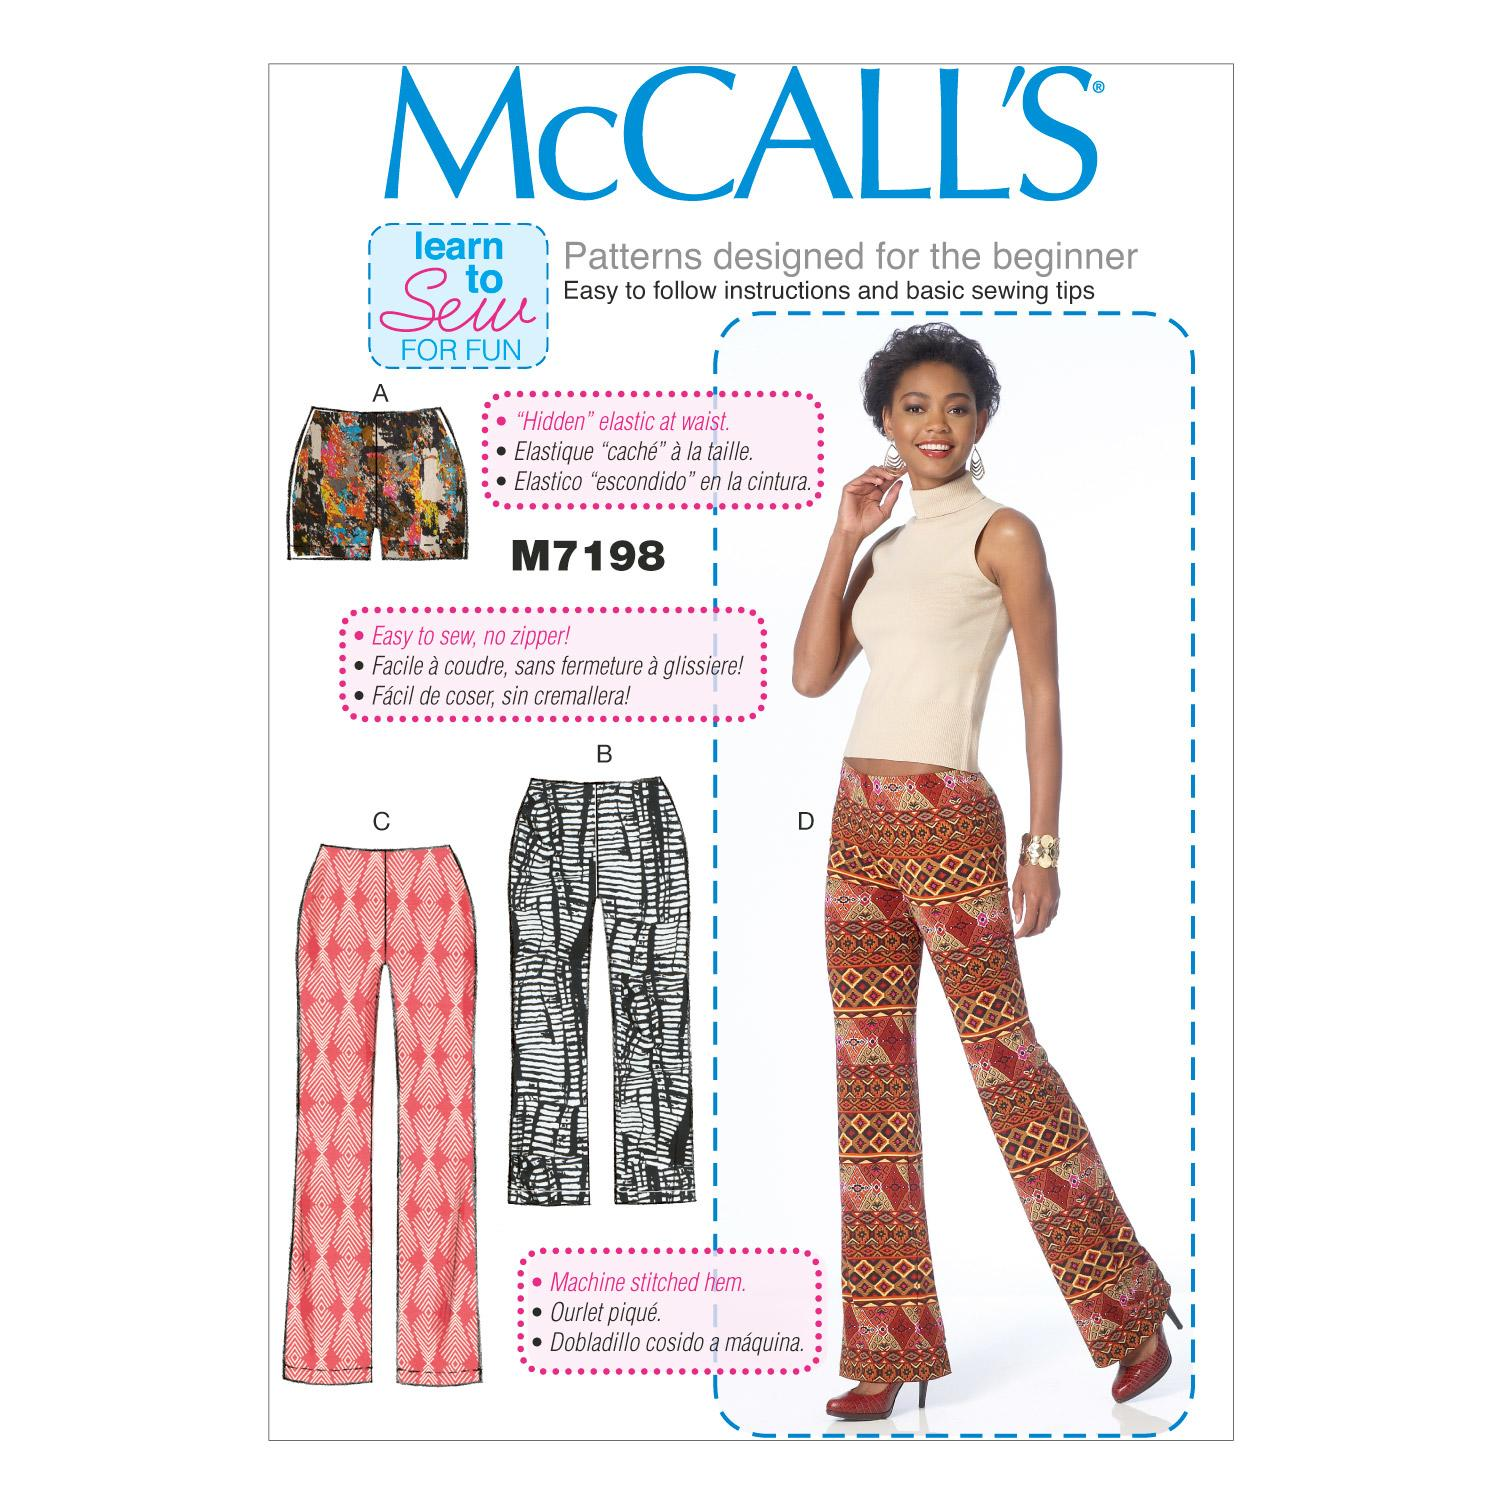 McCalls M7198 Learn To Sew for Fun, Pants/Shorts & Jumpsuits